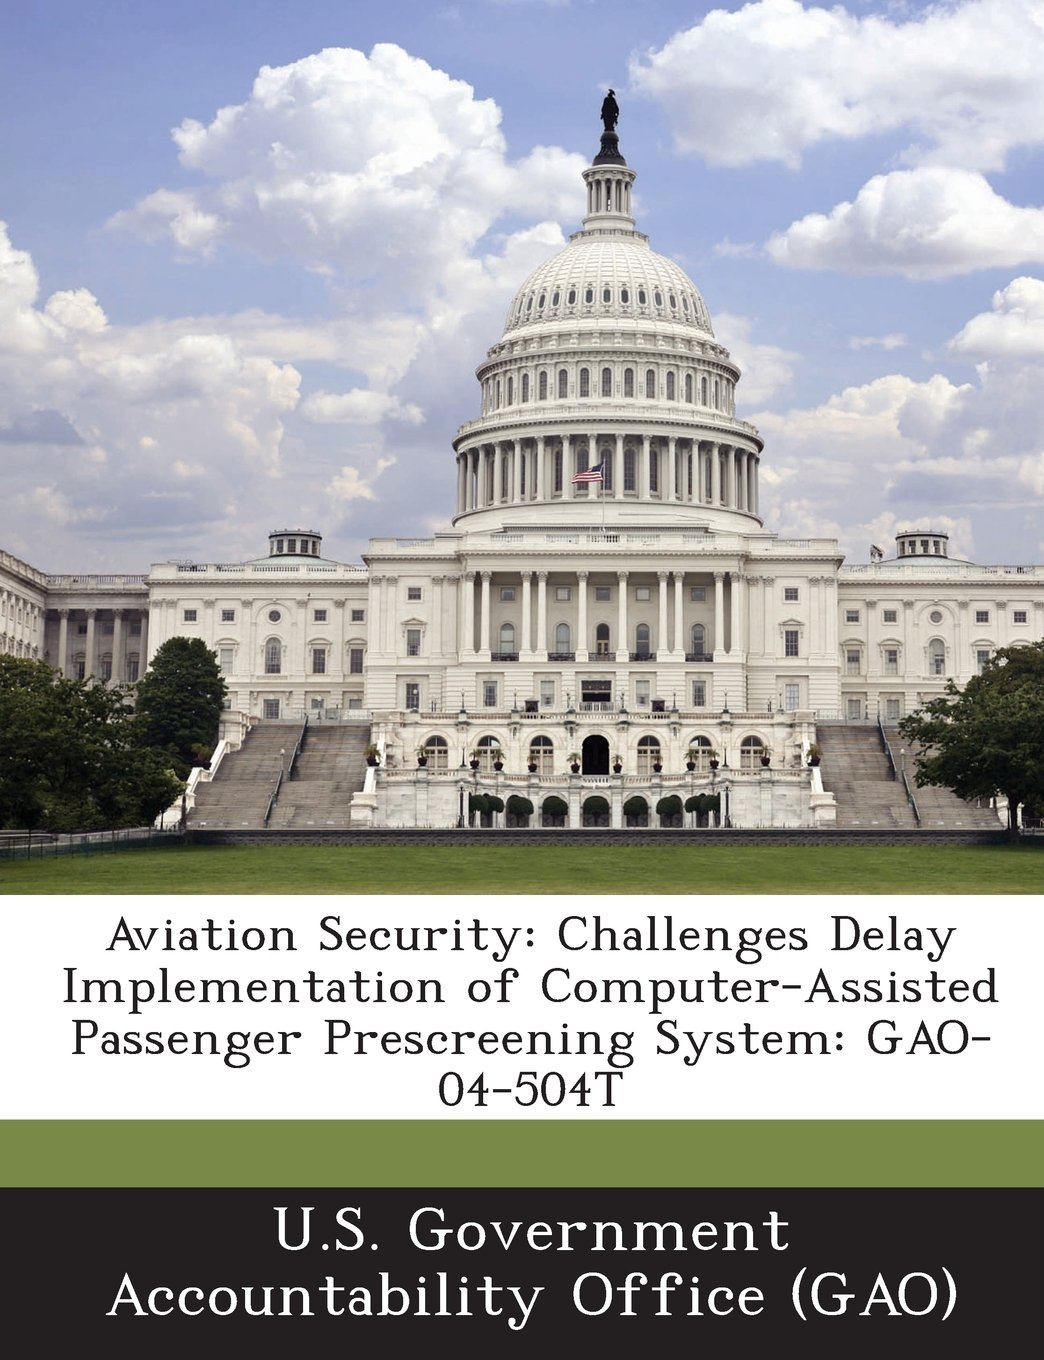 Aviation Security: Challenges Delay Implementation of Computer-Assisted Passenger Prescreening System: Gao-04-504t pdf epub